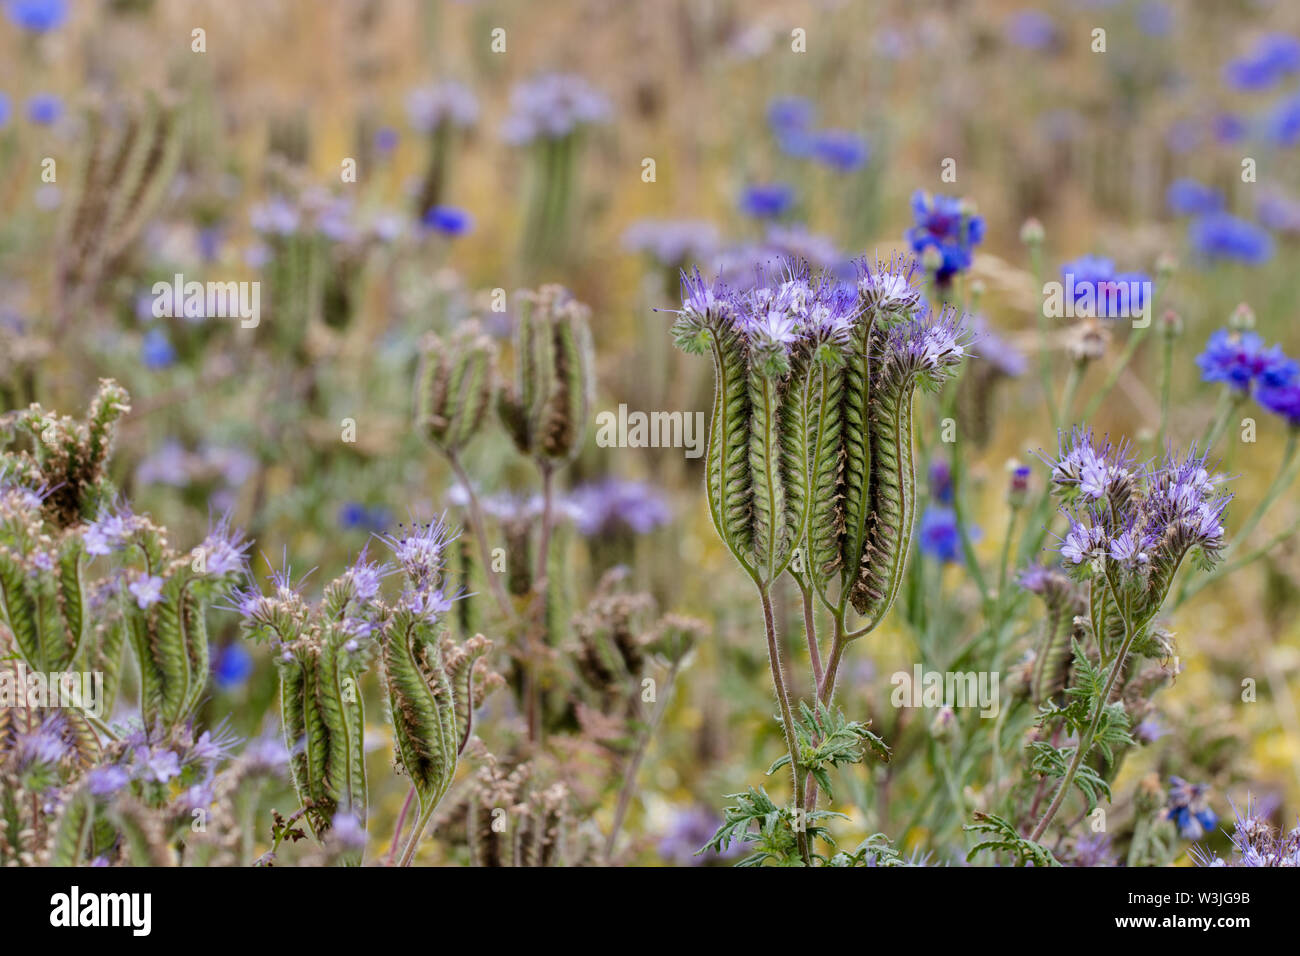 Violet inflorescence of a lacy  phacelia at the end of blooming period. Blue cornflowers in the background. - Stock Image